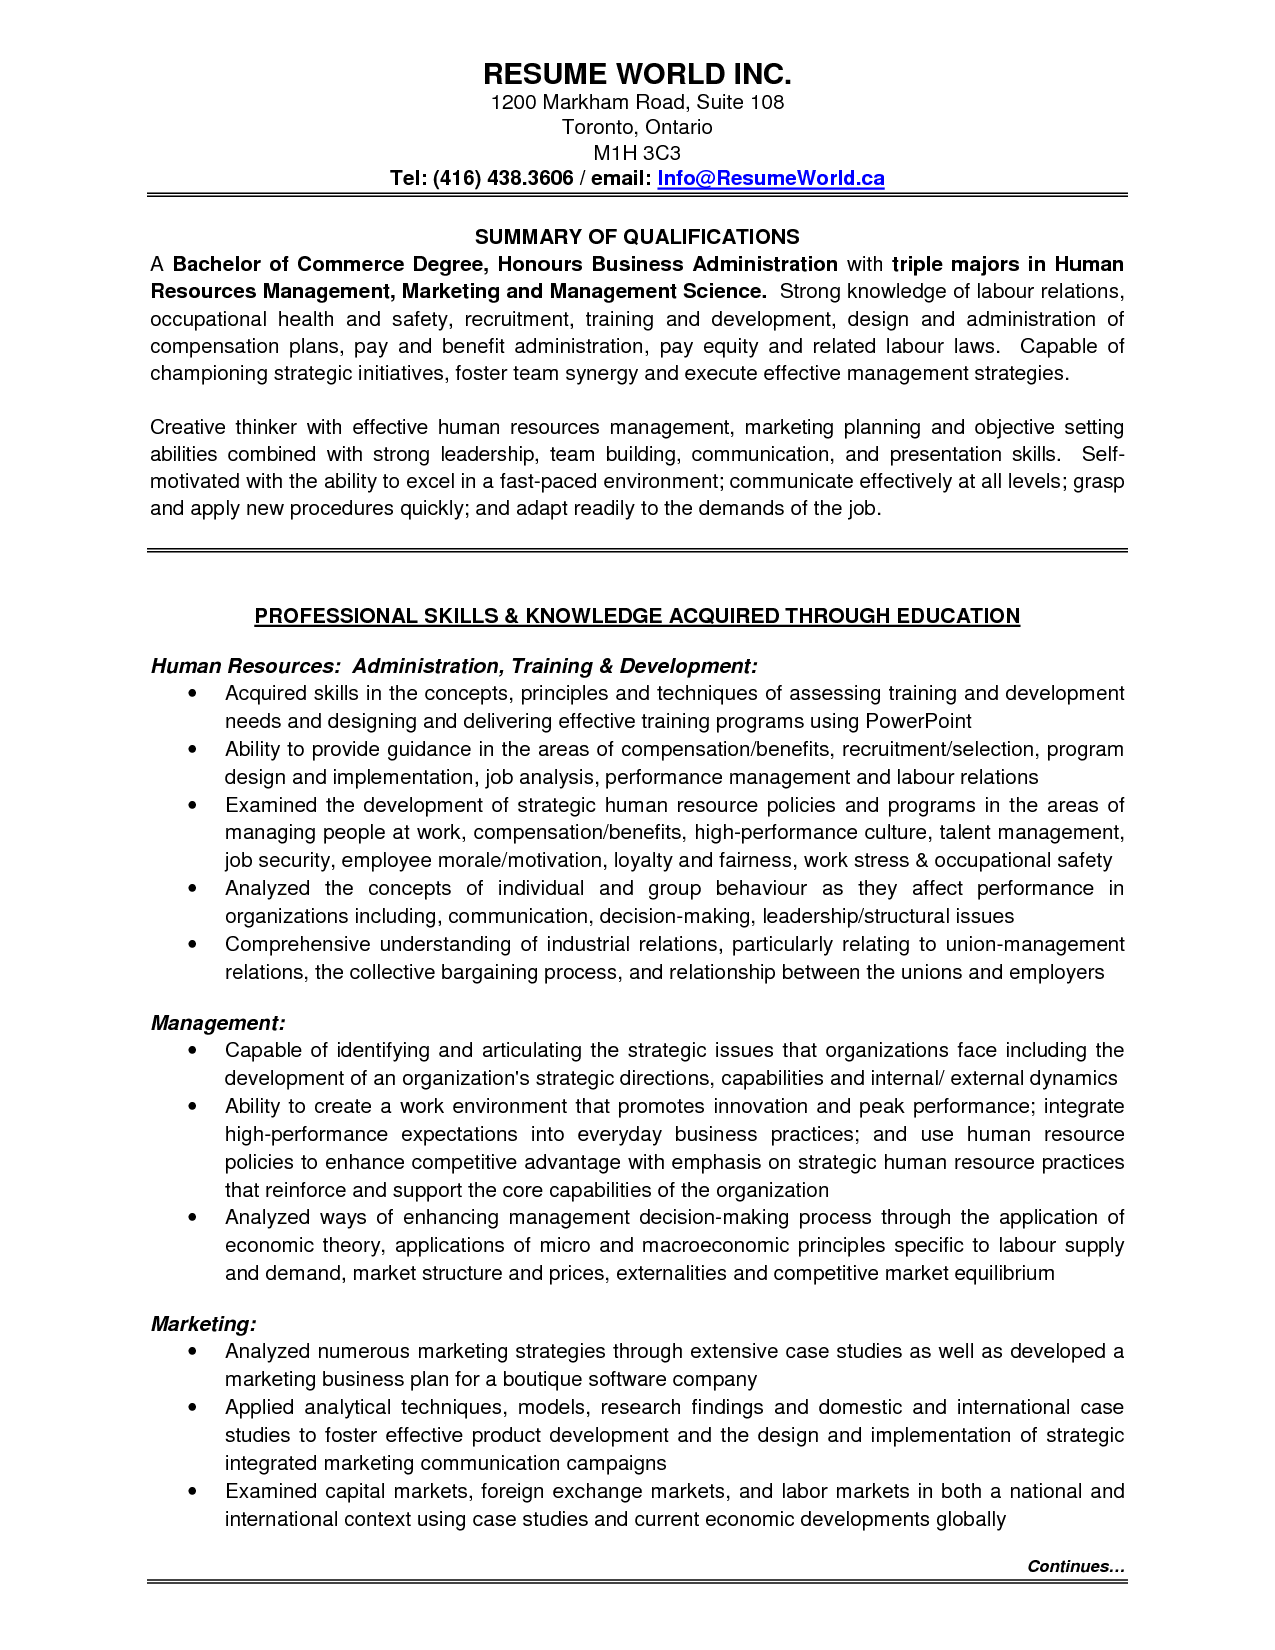 resume objective examples for entry level sales